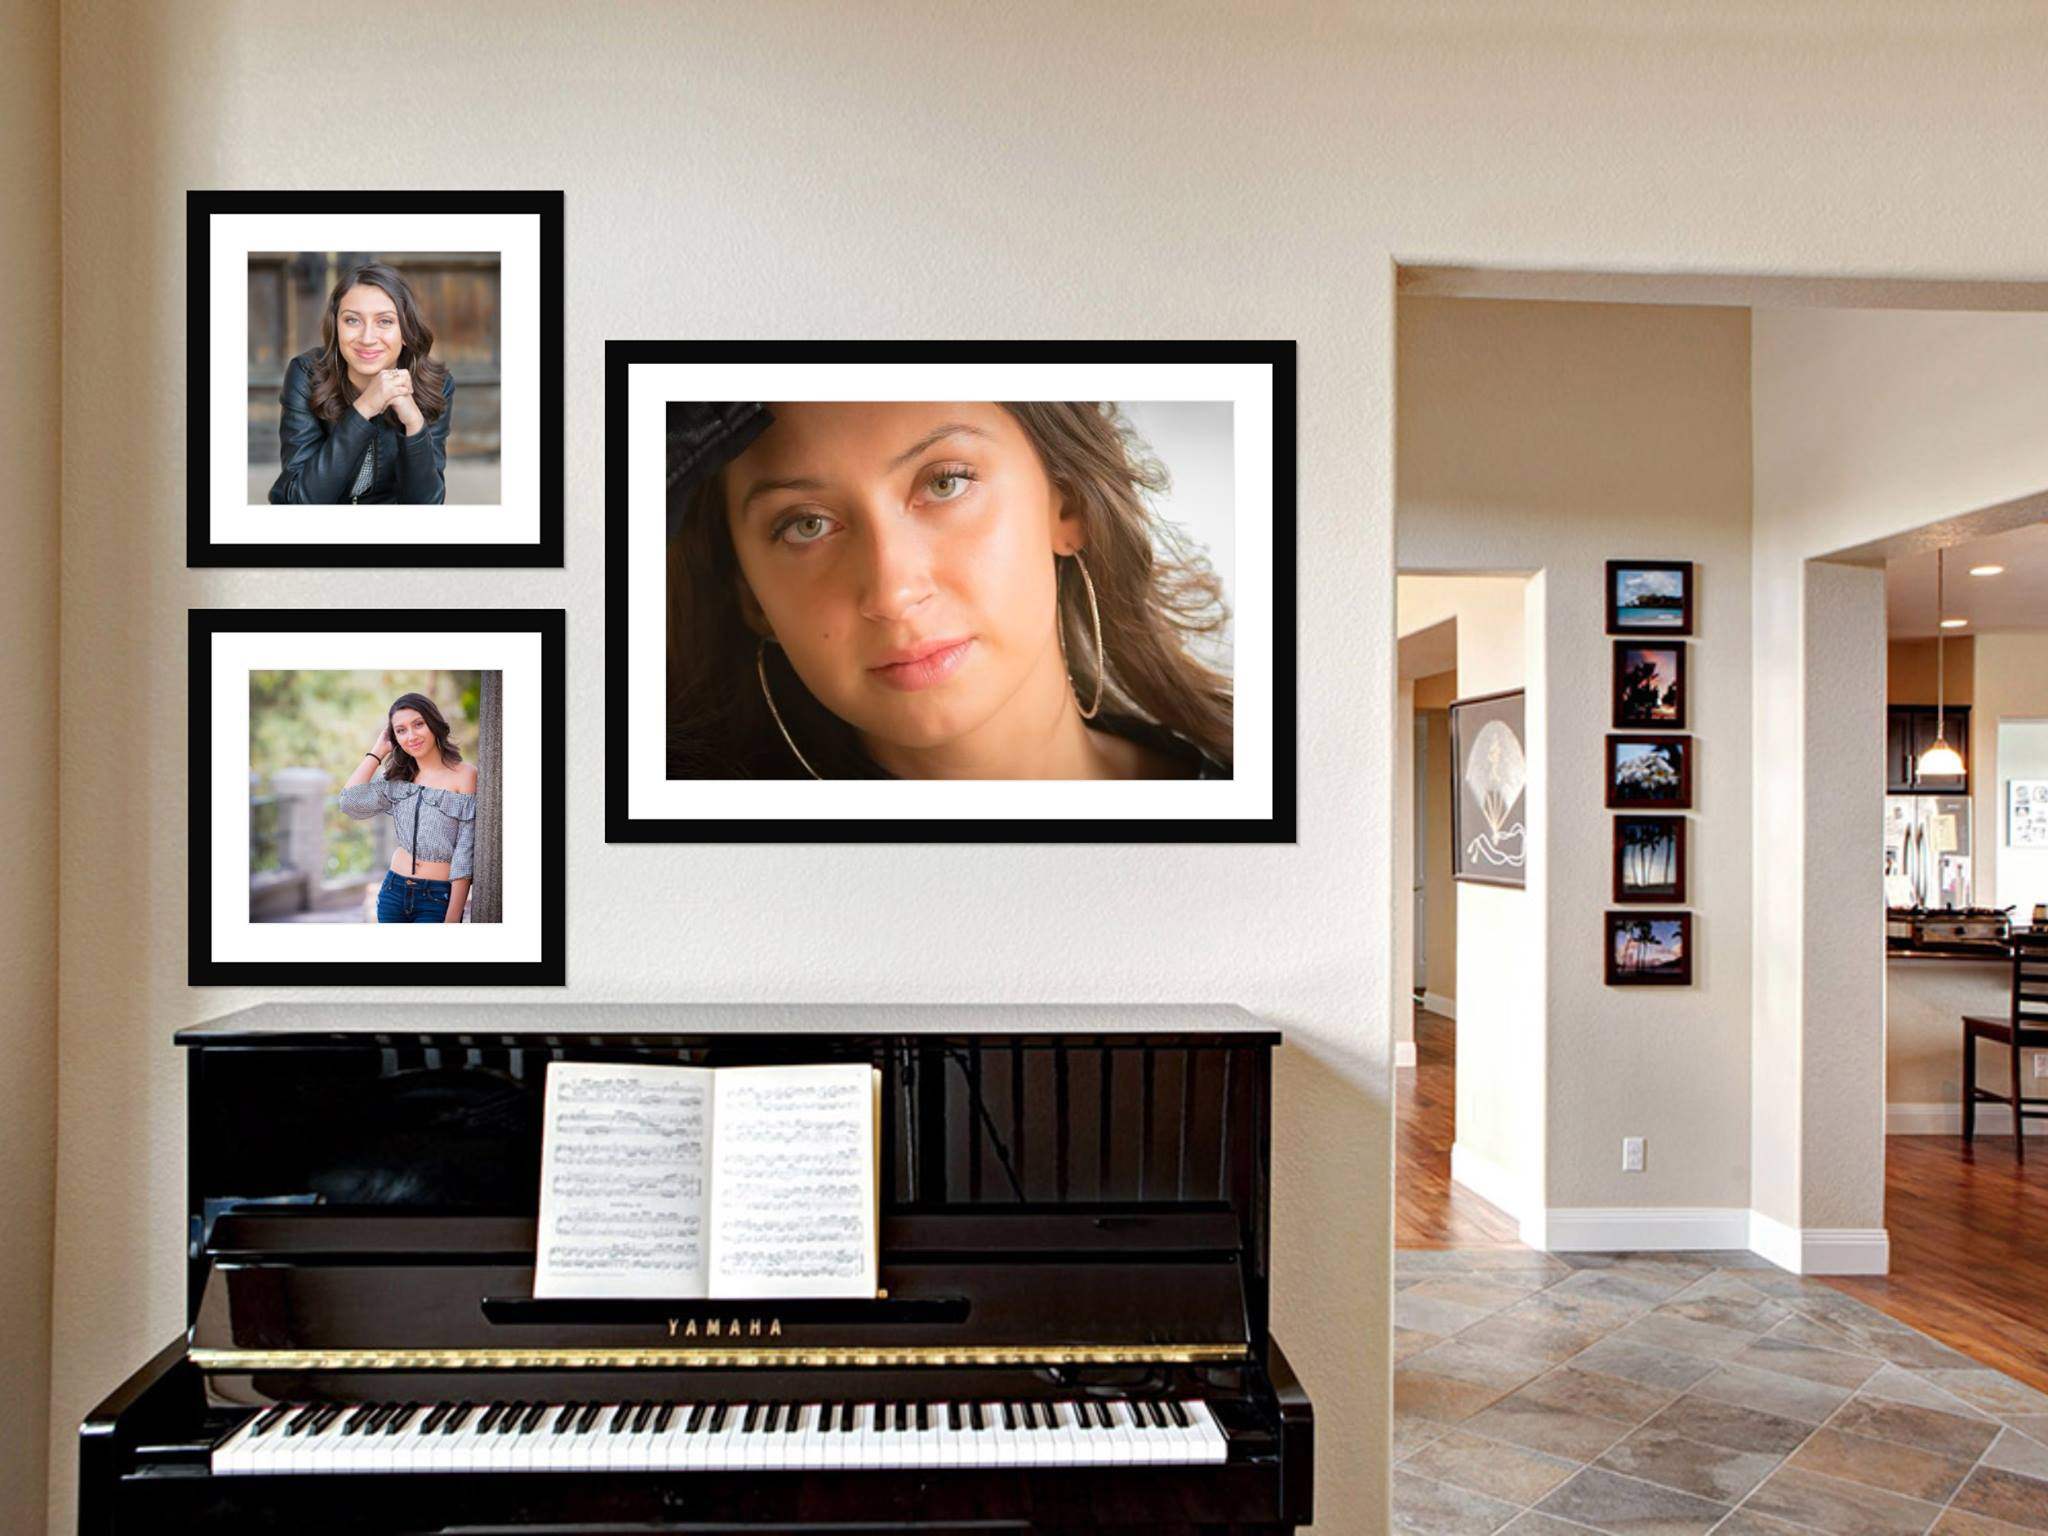 Wall Art + Folio - One 16x24 Wall PortraitTwo 11x14 Wall Portraits10 Portraits16 Digital Files + USB Drive$1,690* (Normally $3,129)Framing is extra, not included